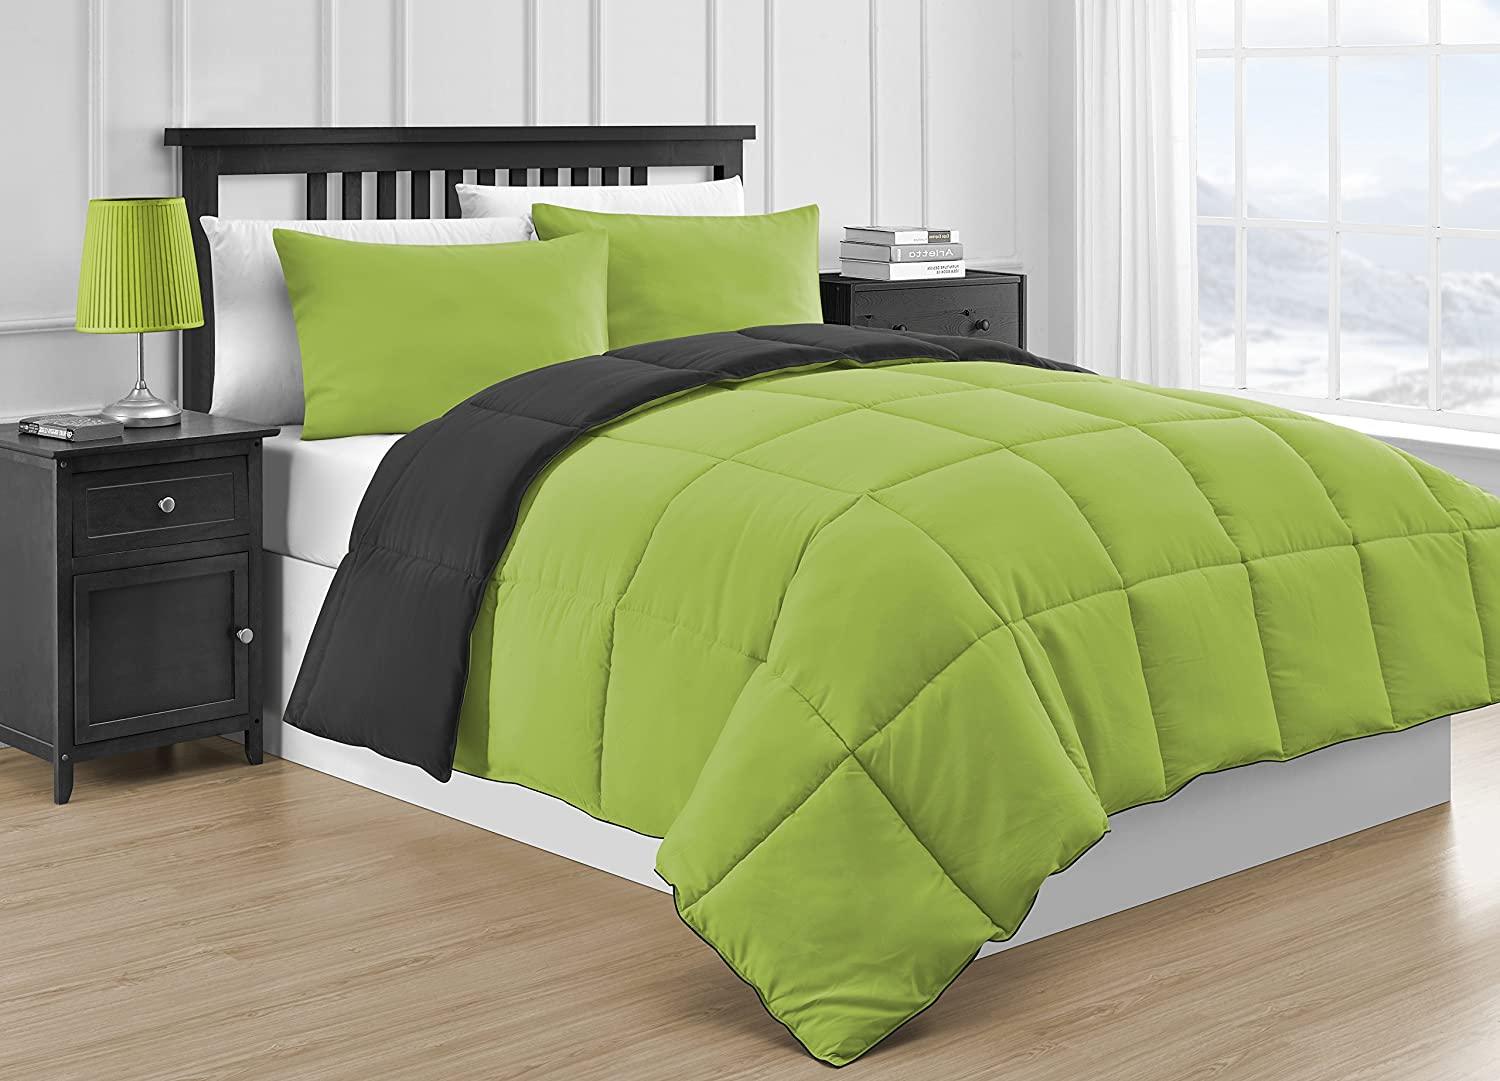 fy Bedding Reversible Microfiber Black & Lime Green 3